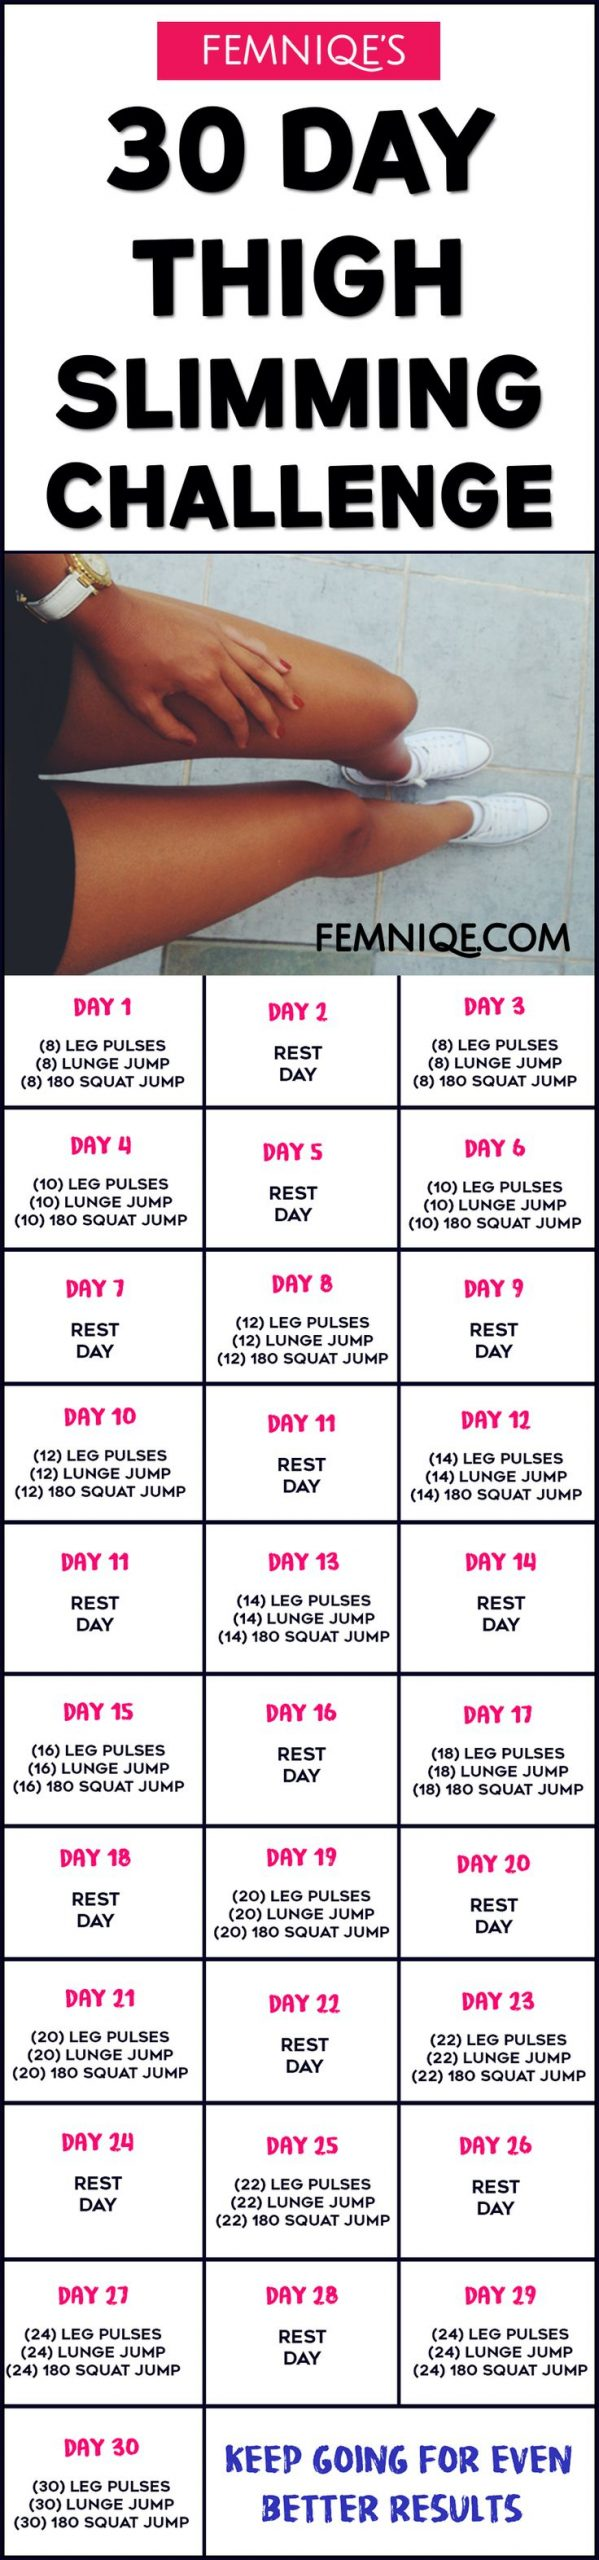 109 Best 30 Day Challenge Images On Pinterest | Challenge With 30 Day Thigh Workout Free Printout